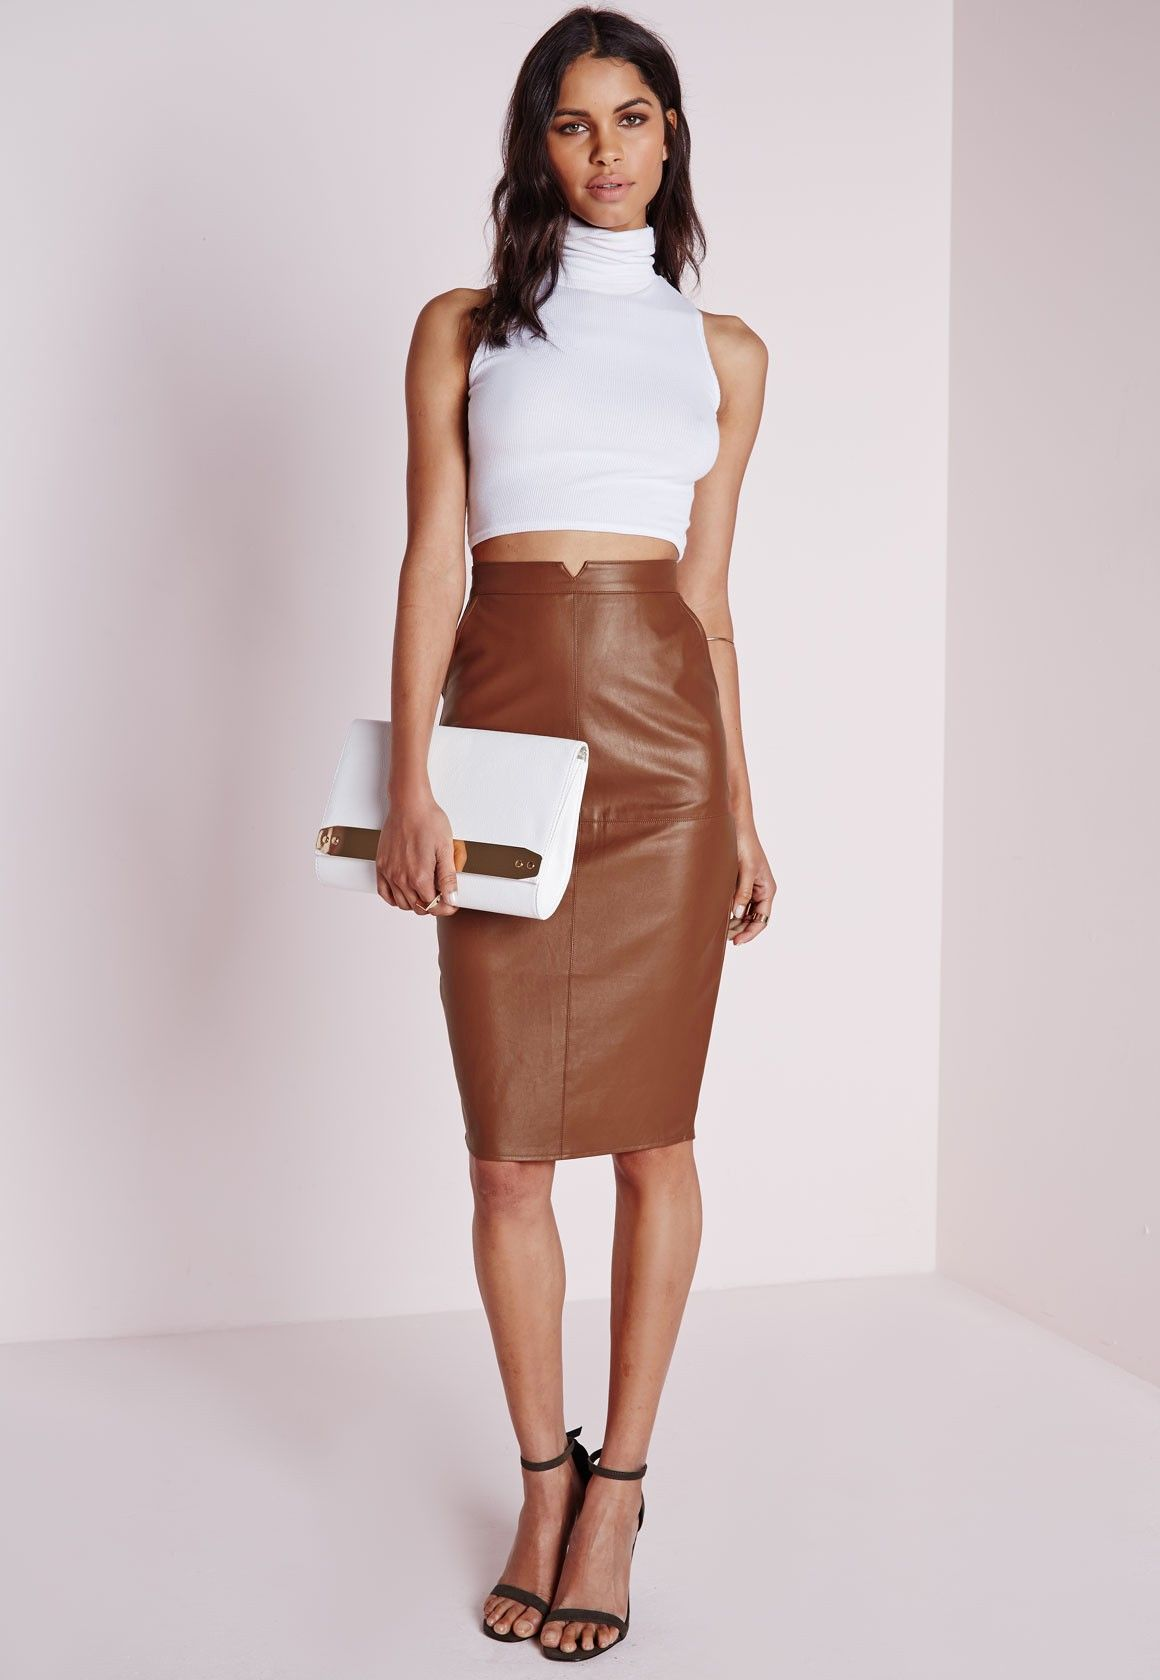 Misguided // Faux Leather Midi Skirt in Tan | aesthetic ...